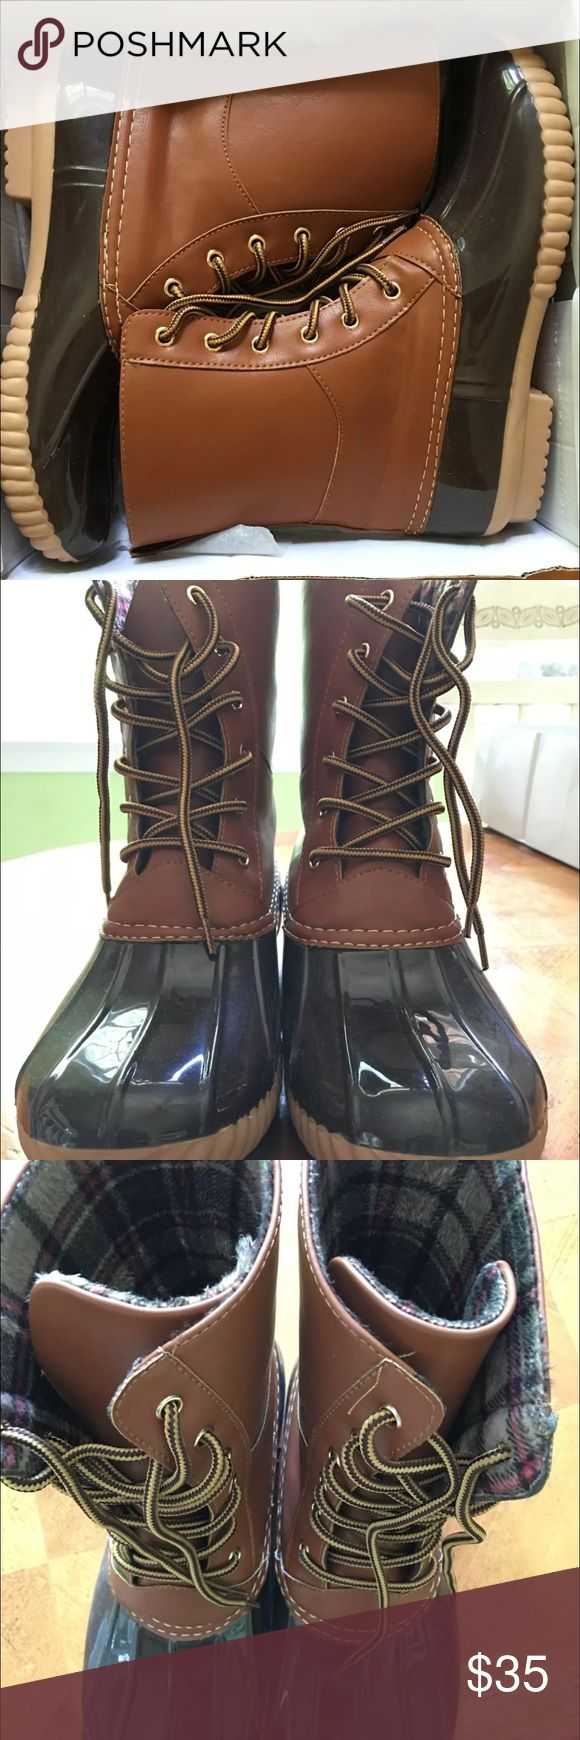 Women's Duck Boots Size 10 RUNS SMALL. Only worn once. Off Brand Shoes Ankle Boots & Booties